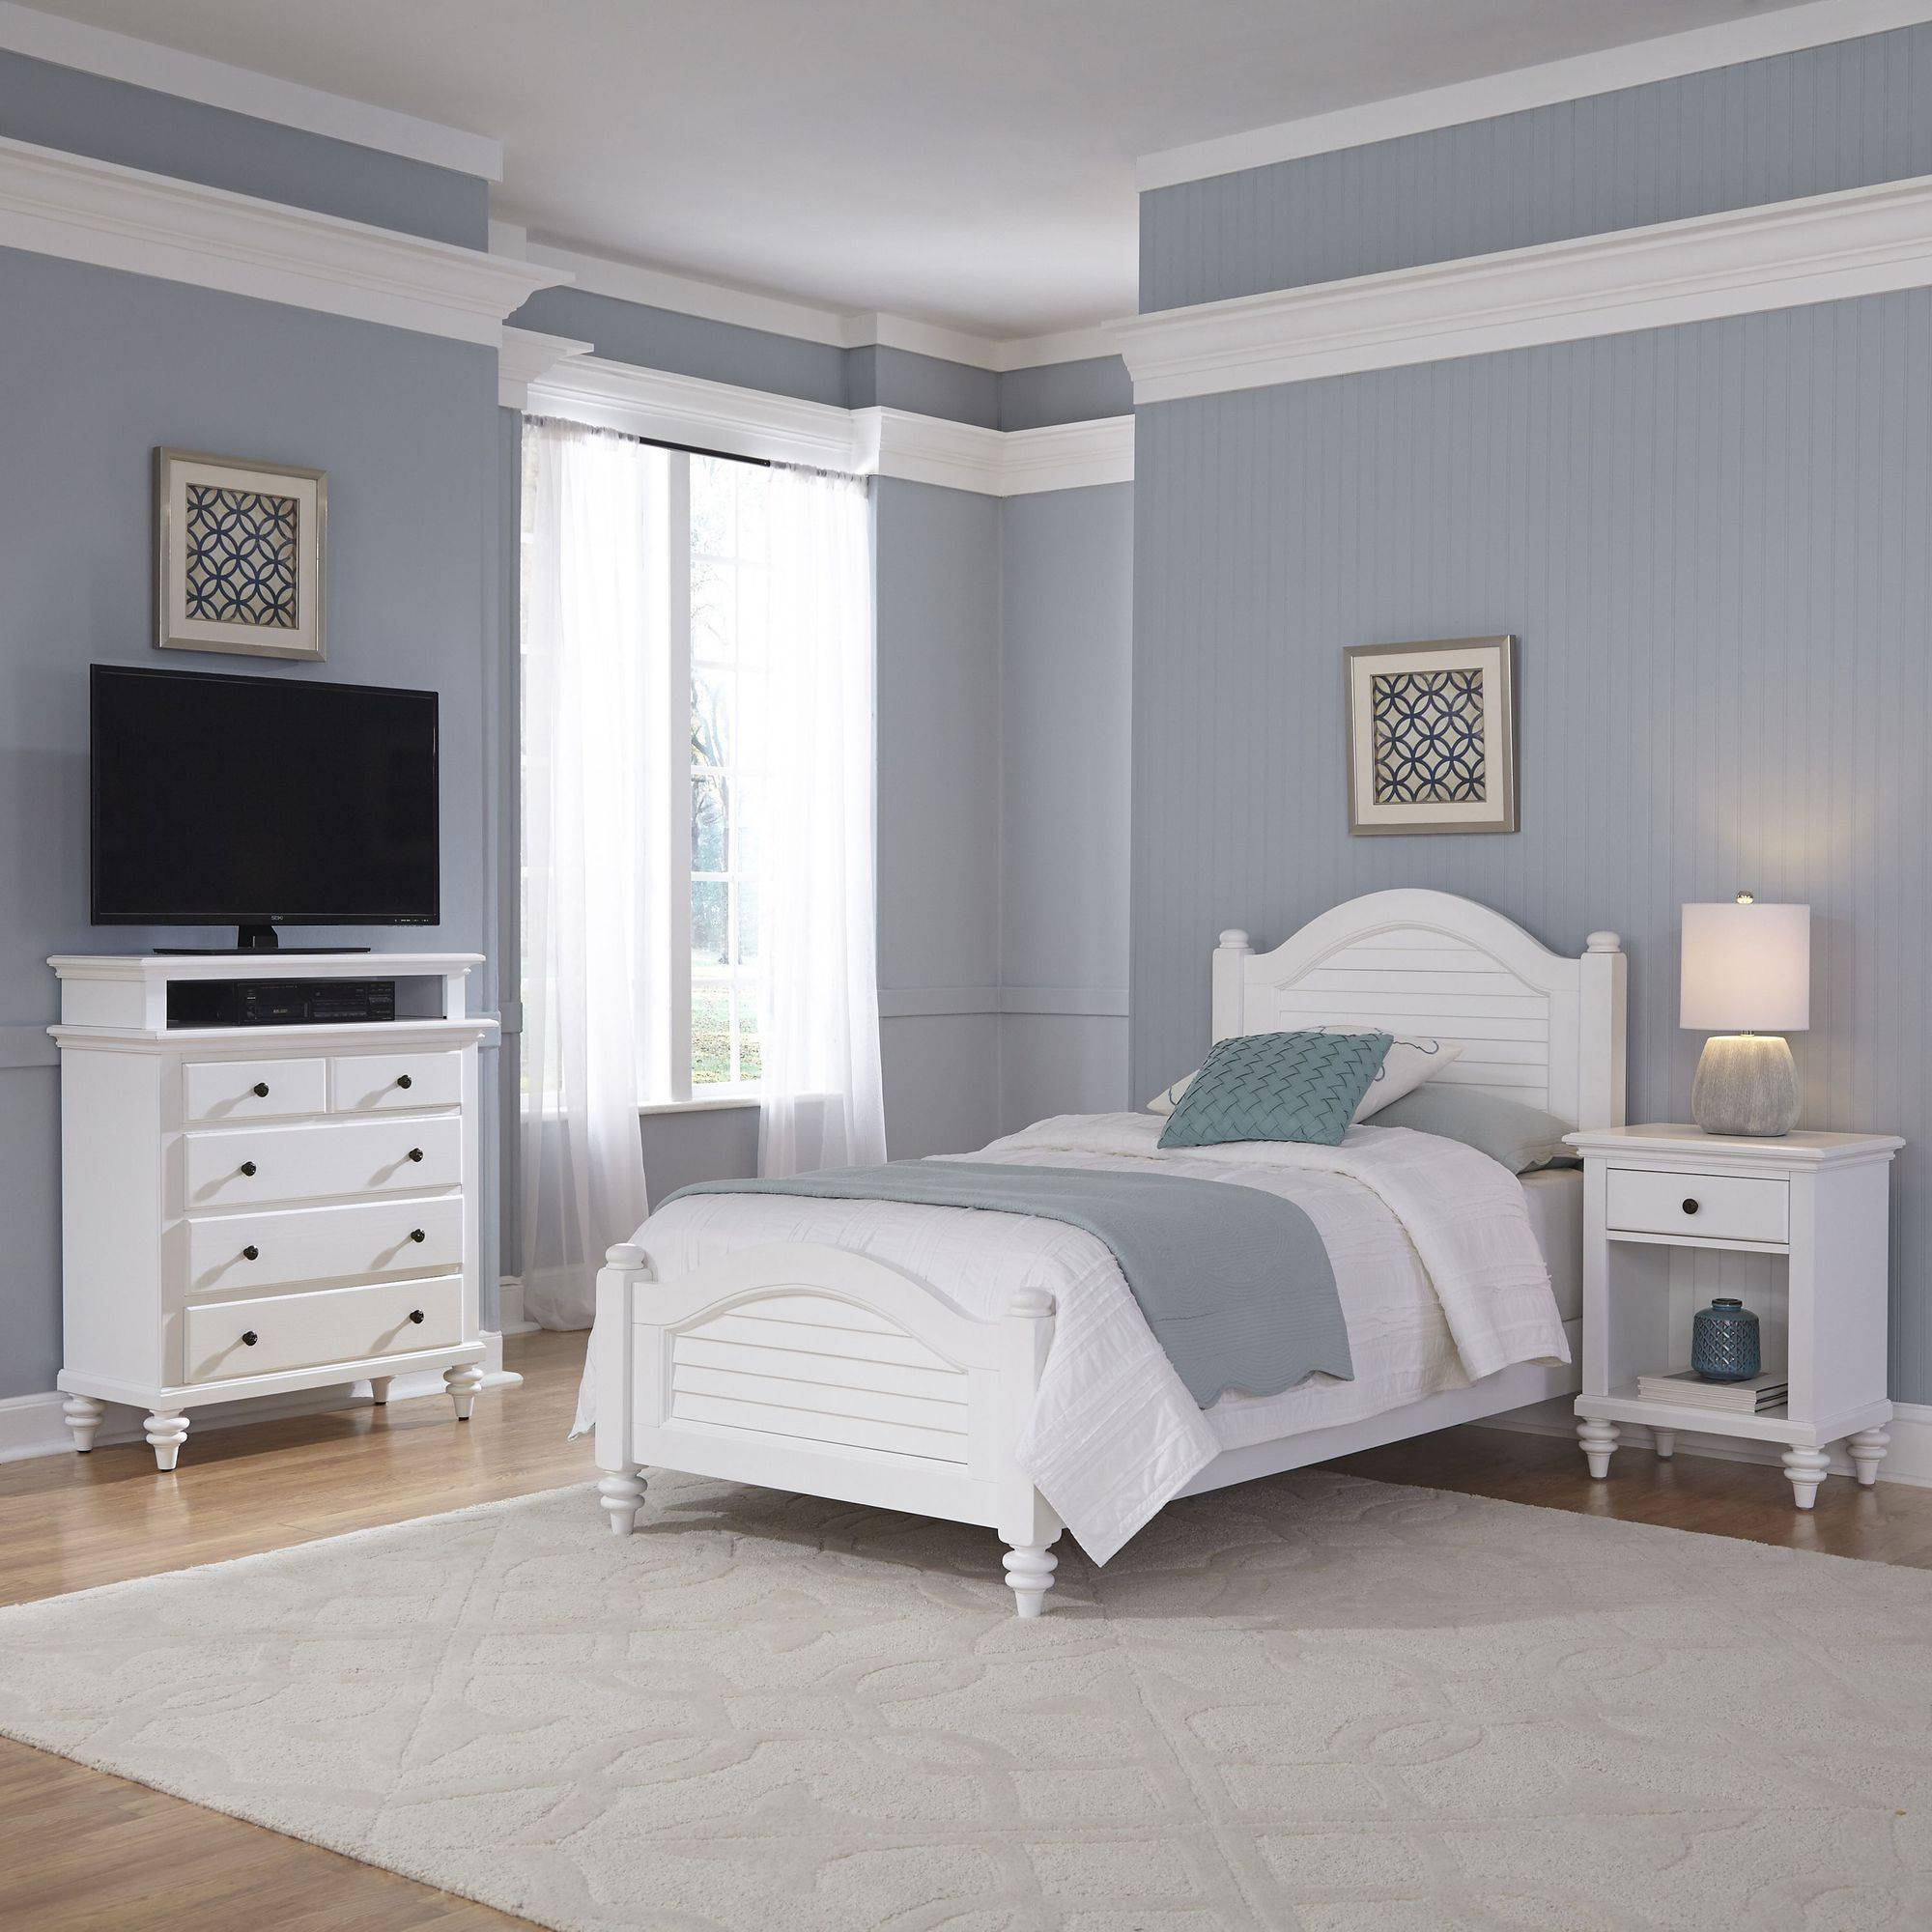 Home Styles Bermuda Bedroom Furniture Collection Brushed